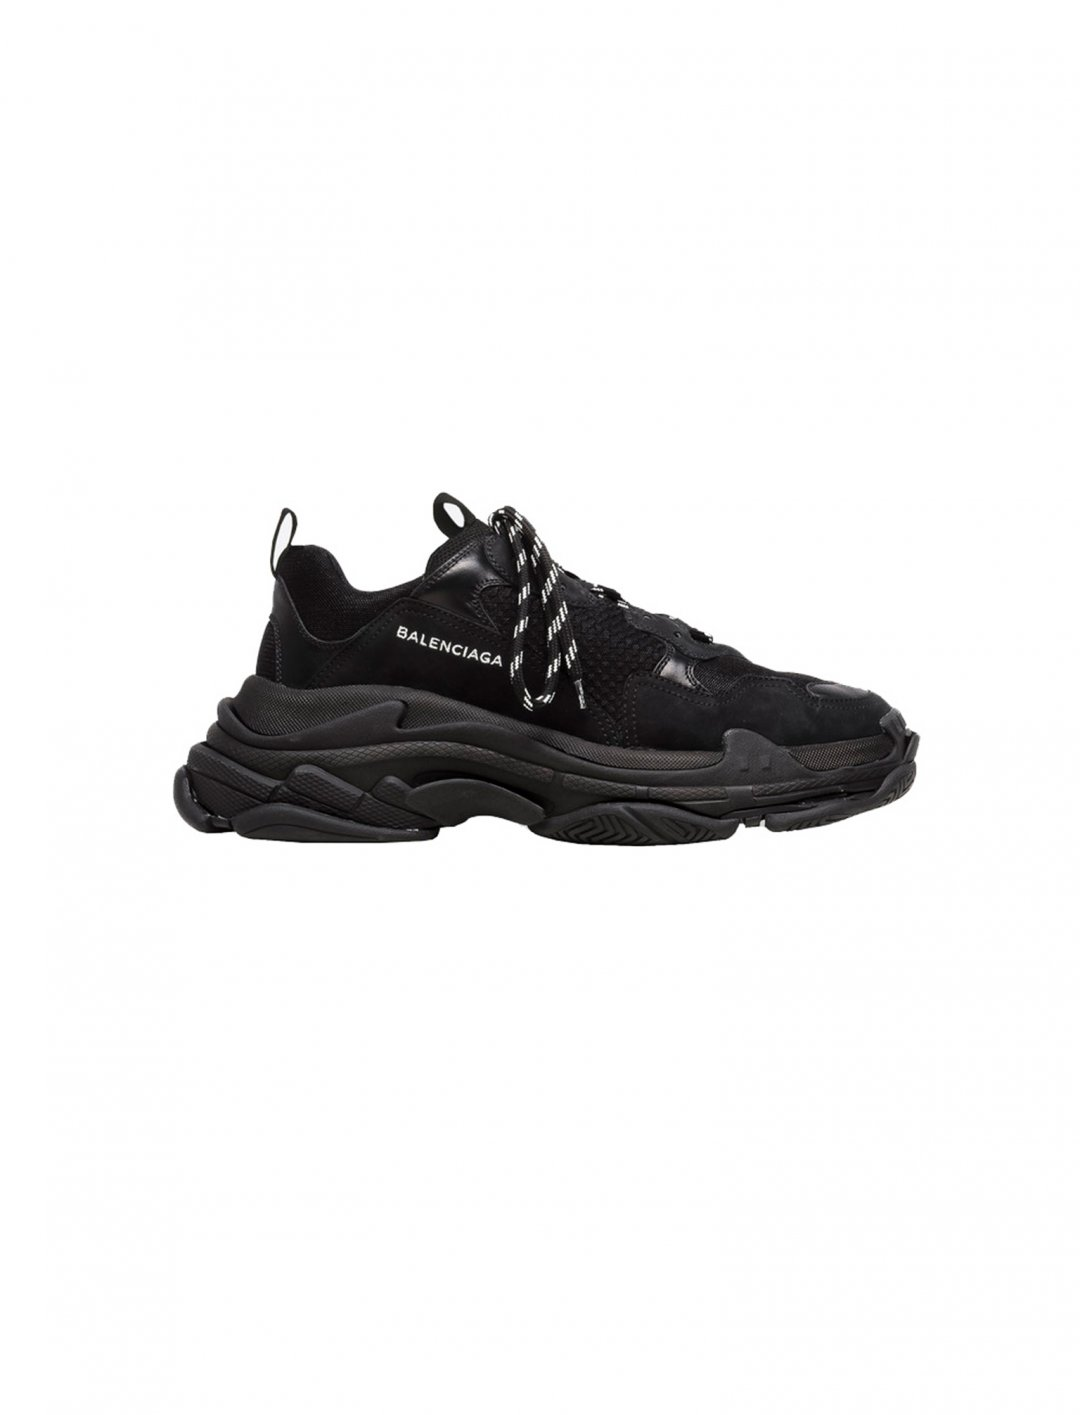 "Yxng Bane's Black Trainers {""id"":12,""product_section_id"":1,""name"":""Shoes"",""order"":12} Balenciaga"